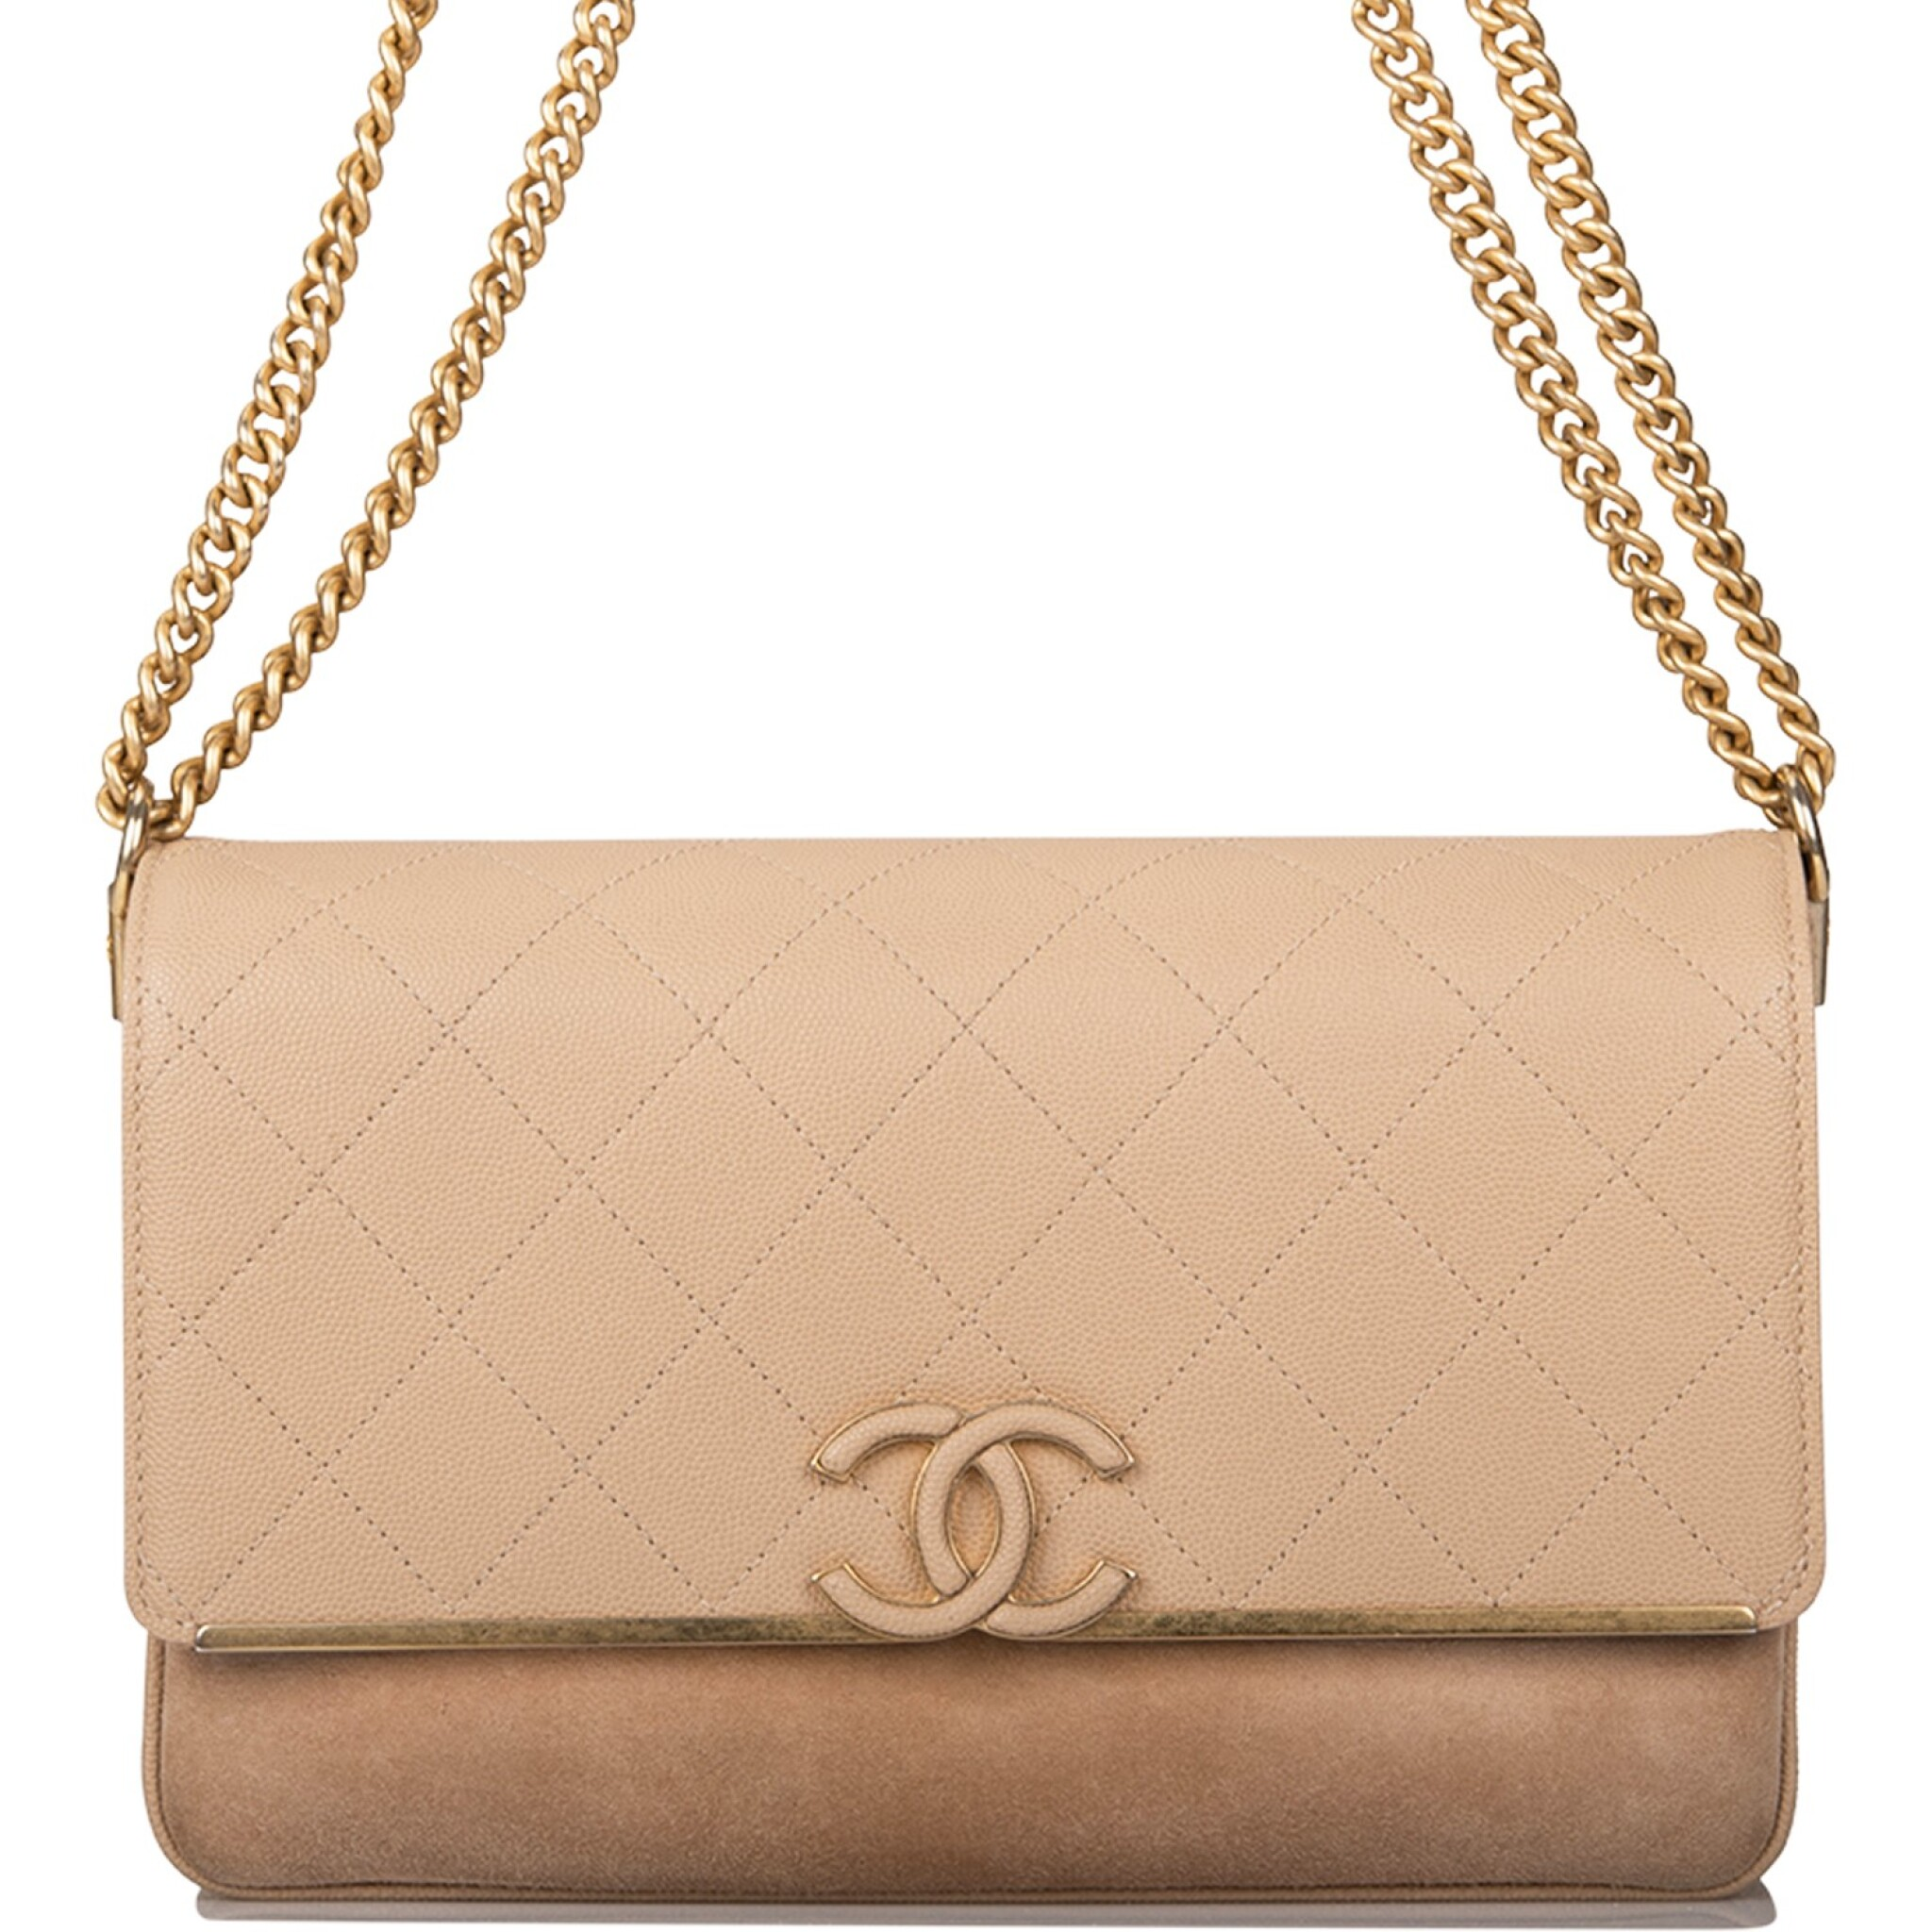 View full screen - View 1 of Lot 97. CHANEL    BEIGE FLAP BAG OF QUILTED CAVIAR AND SUEDE WITH MATTE GOLD TONE HARDWARE.